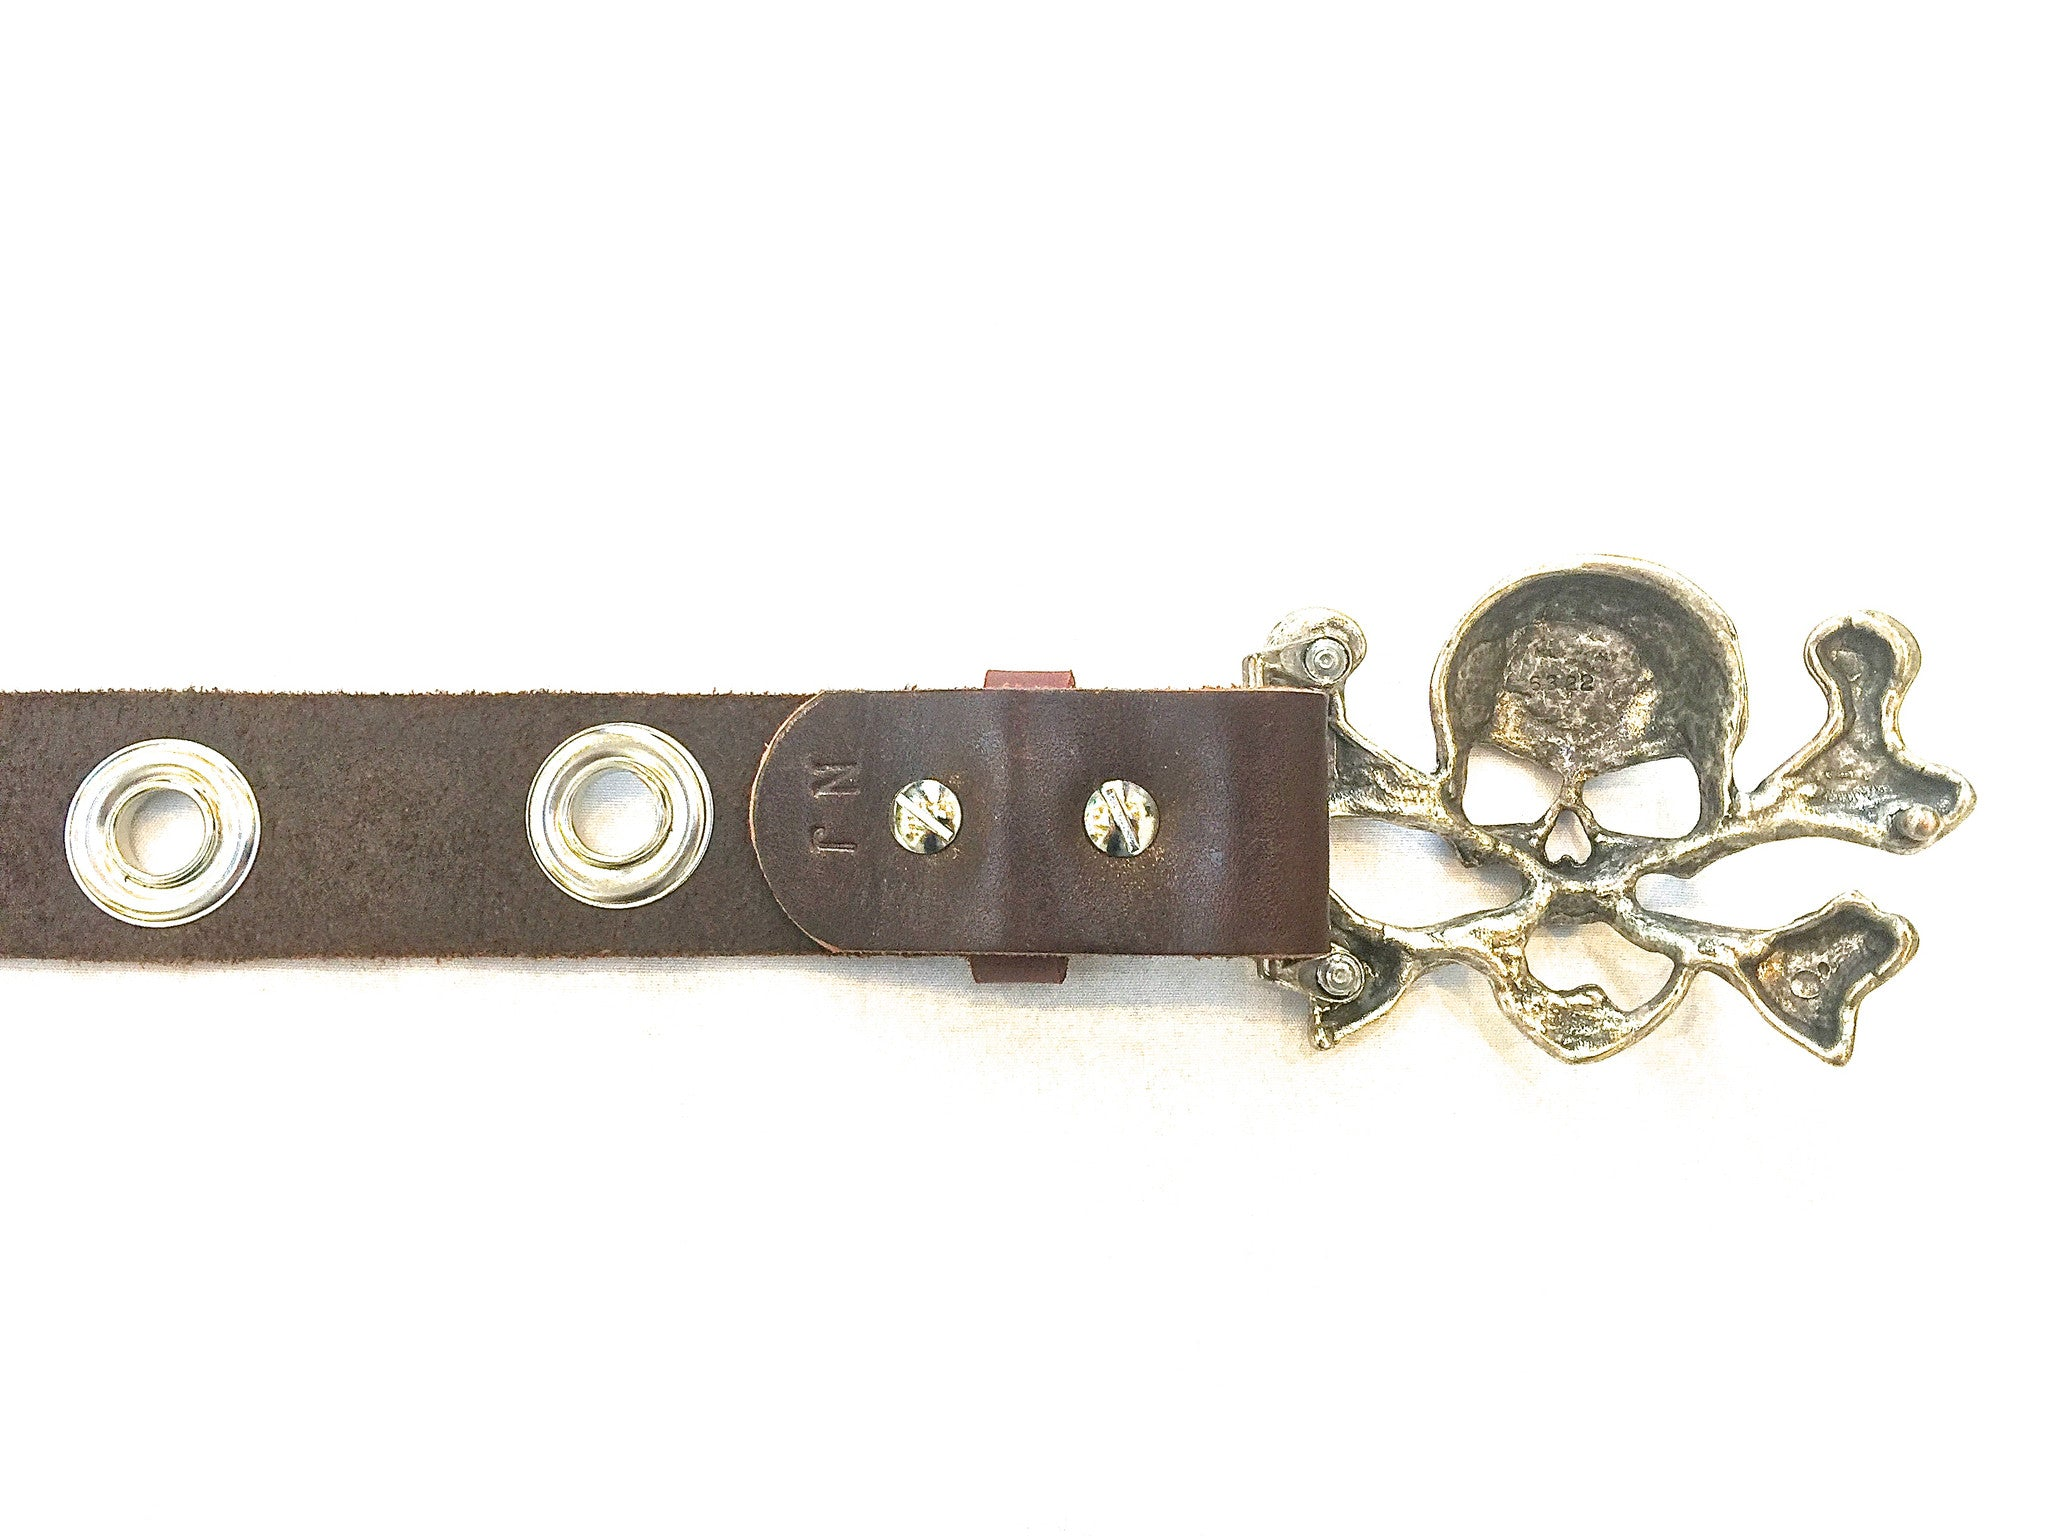 Skull and Portholes belt